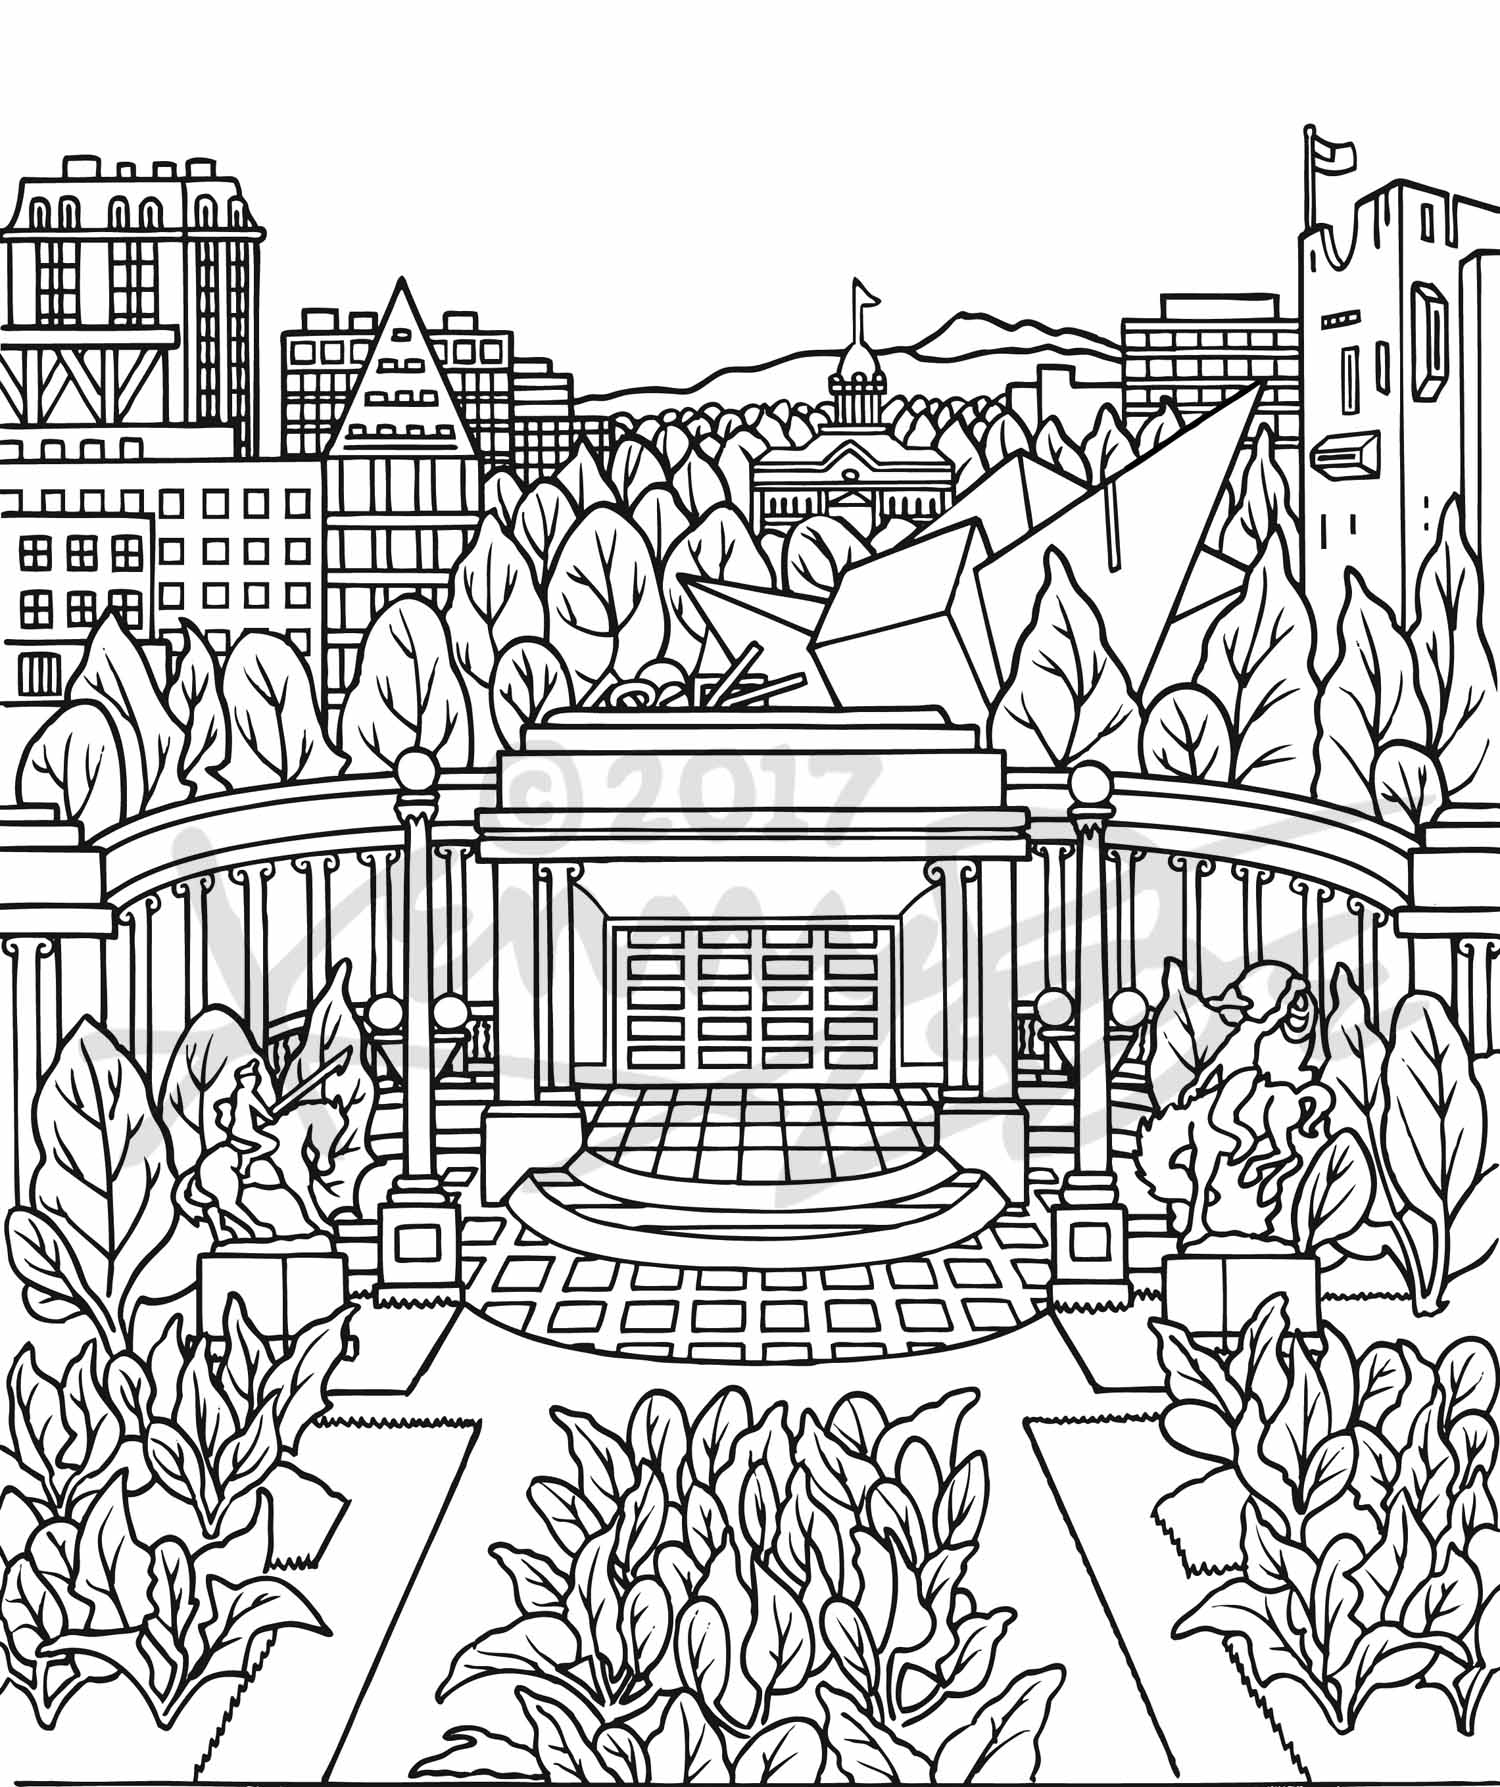 3. Civic Center Golden Triangle Spinach Denver Neighborhood Seed Company Kenny Be Art & Design kennybe.com BW Line Art.jpg